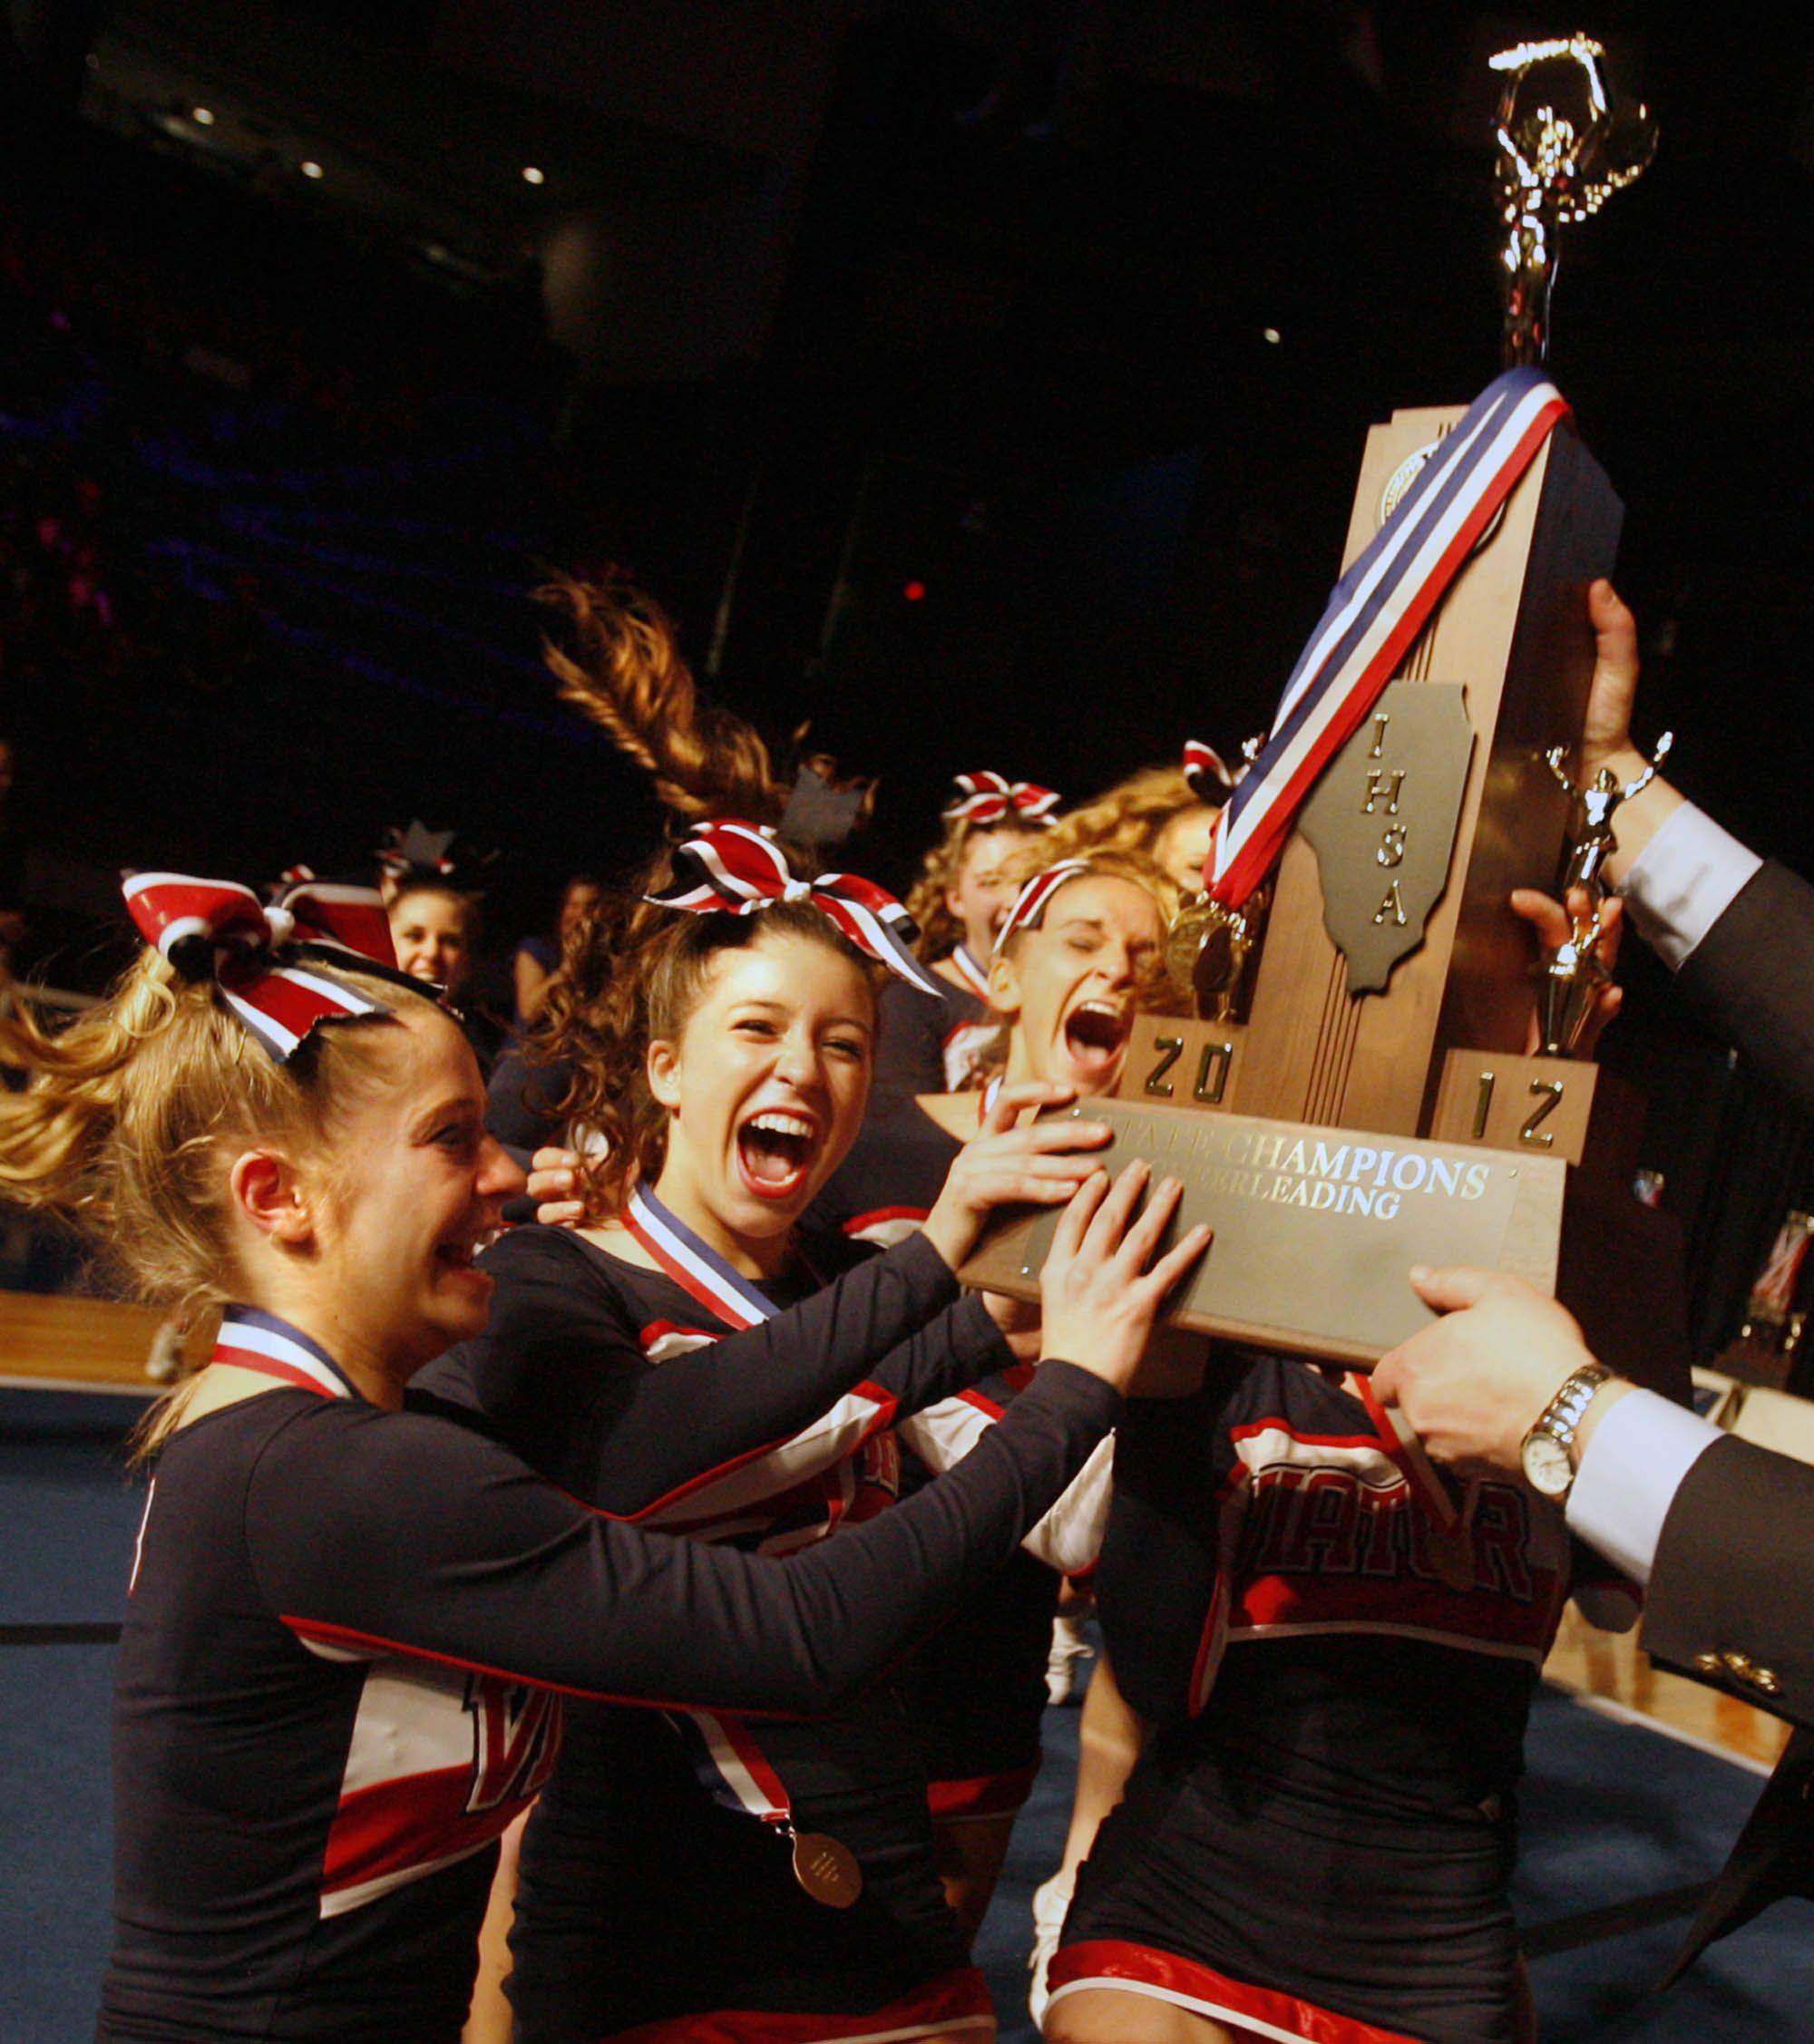 St. Viator high school cheerleading team raises to accept the first place trophy for the medium school category at IHSA cheerleading state finals at U.S. Cellular Coliseum in Bloomington on Saturday, February 4th.